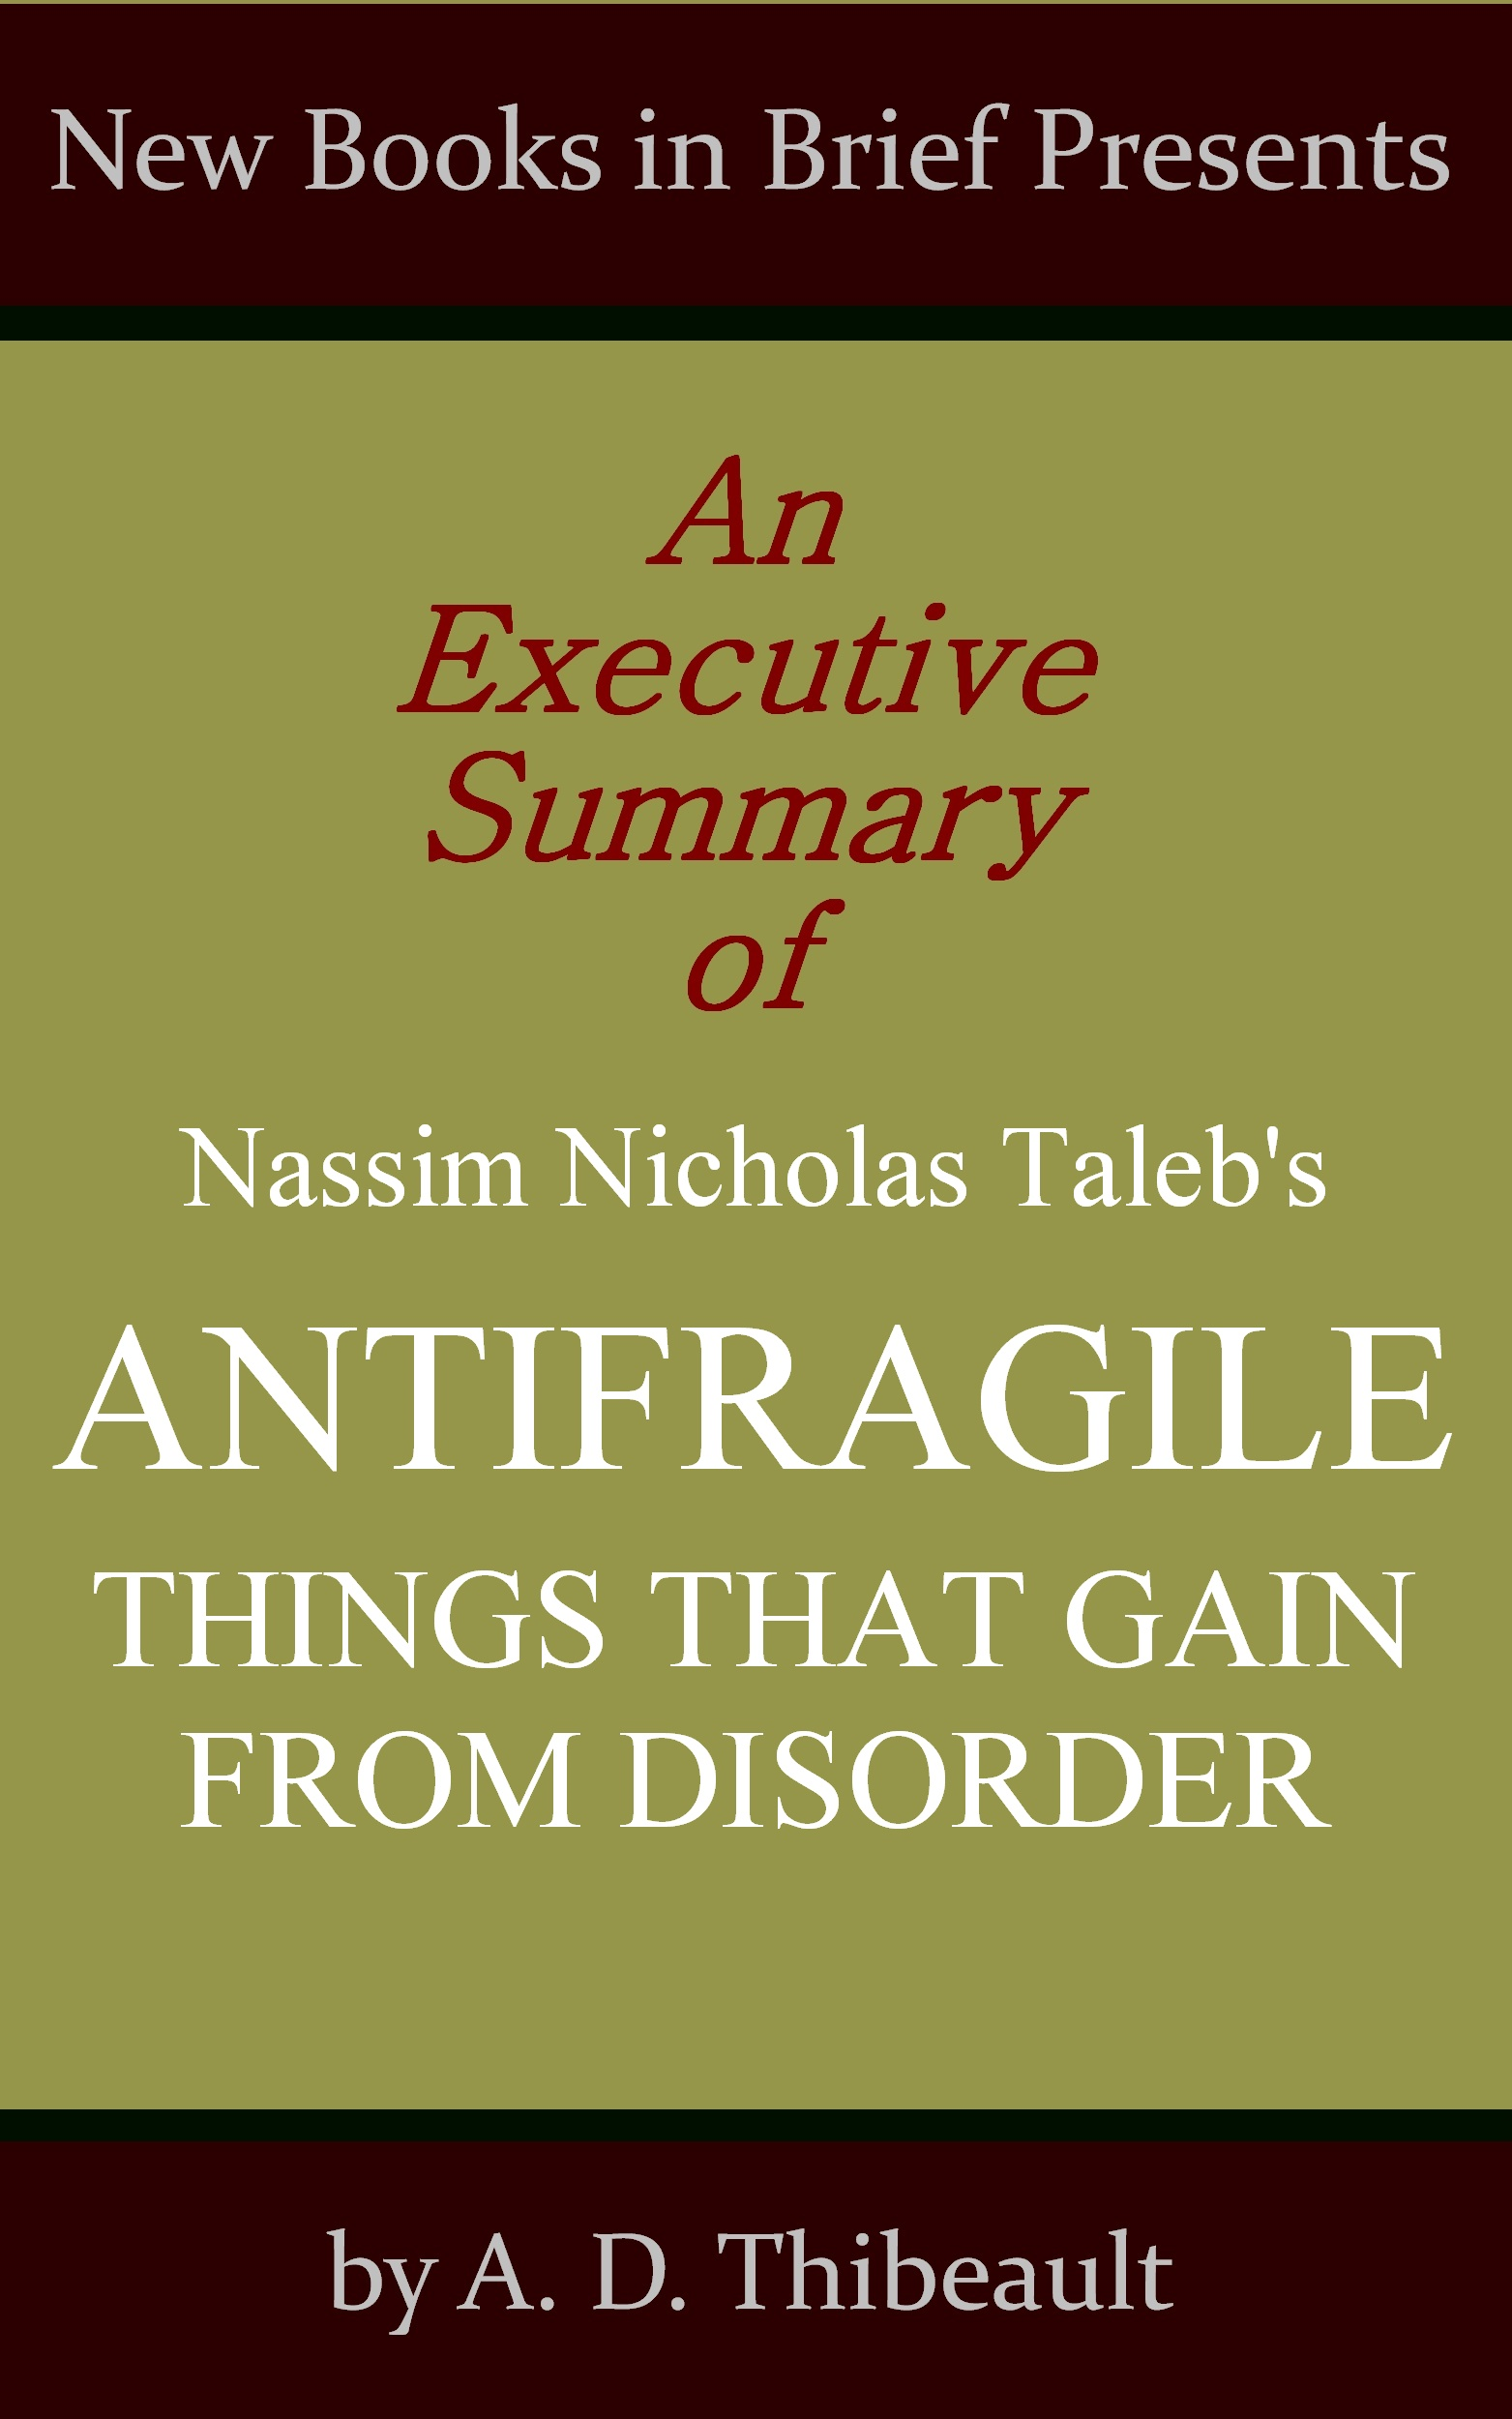 A. D. Thibeault - An Executive Summary of Nassim Nicholas Taleb's 'Antifragile: Things That Gain from Disorder'